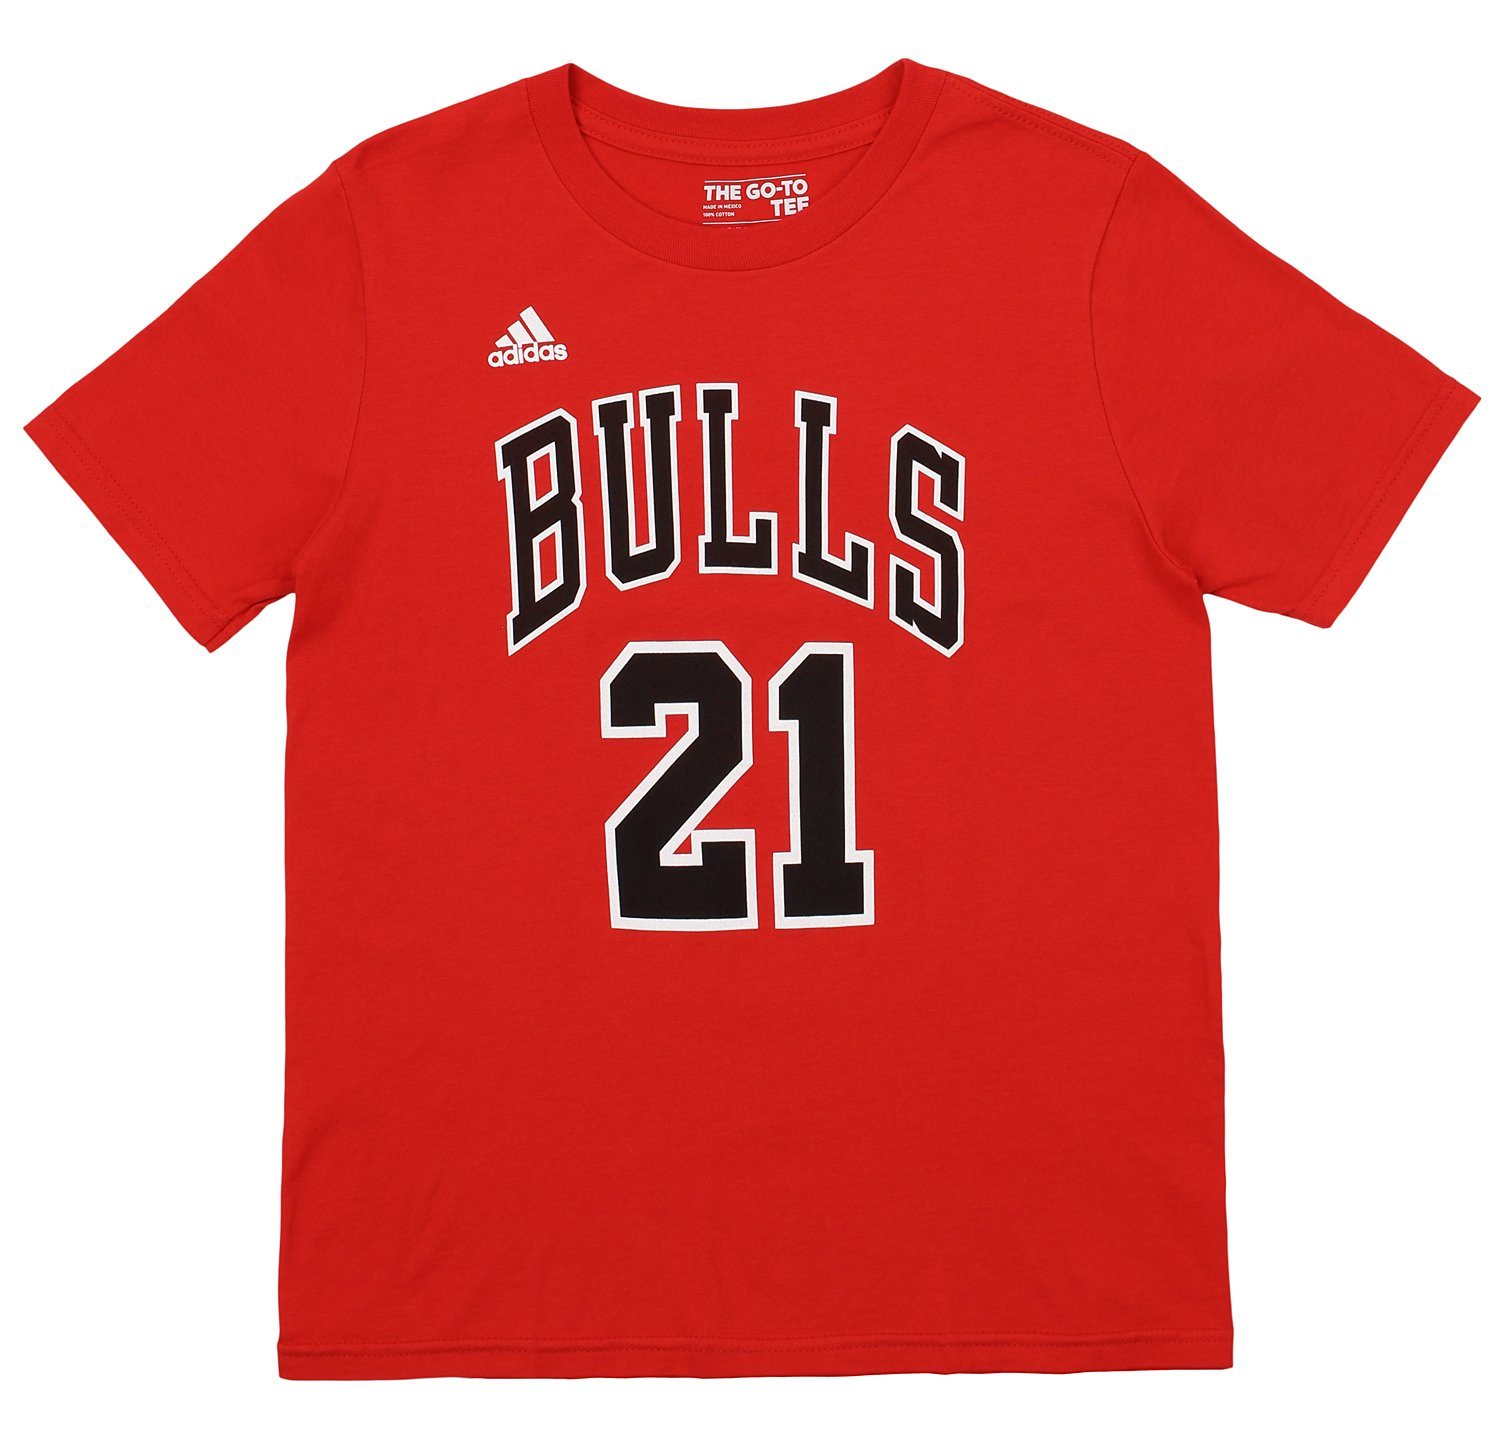 Adidas NBA Youth Chicago Bulls Jimmy Butler #21 Player's Tee Shirt, Red